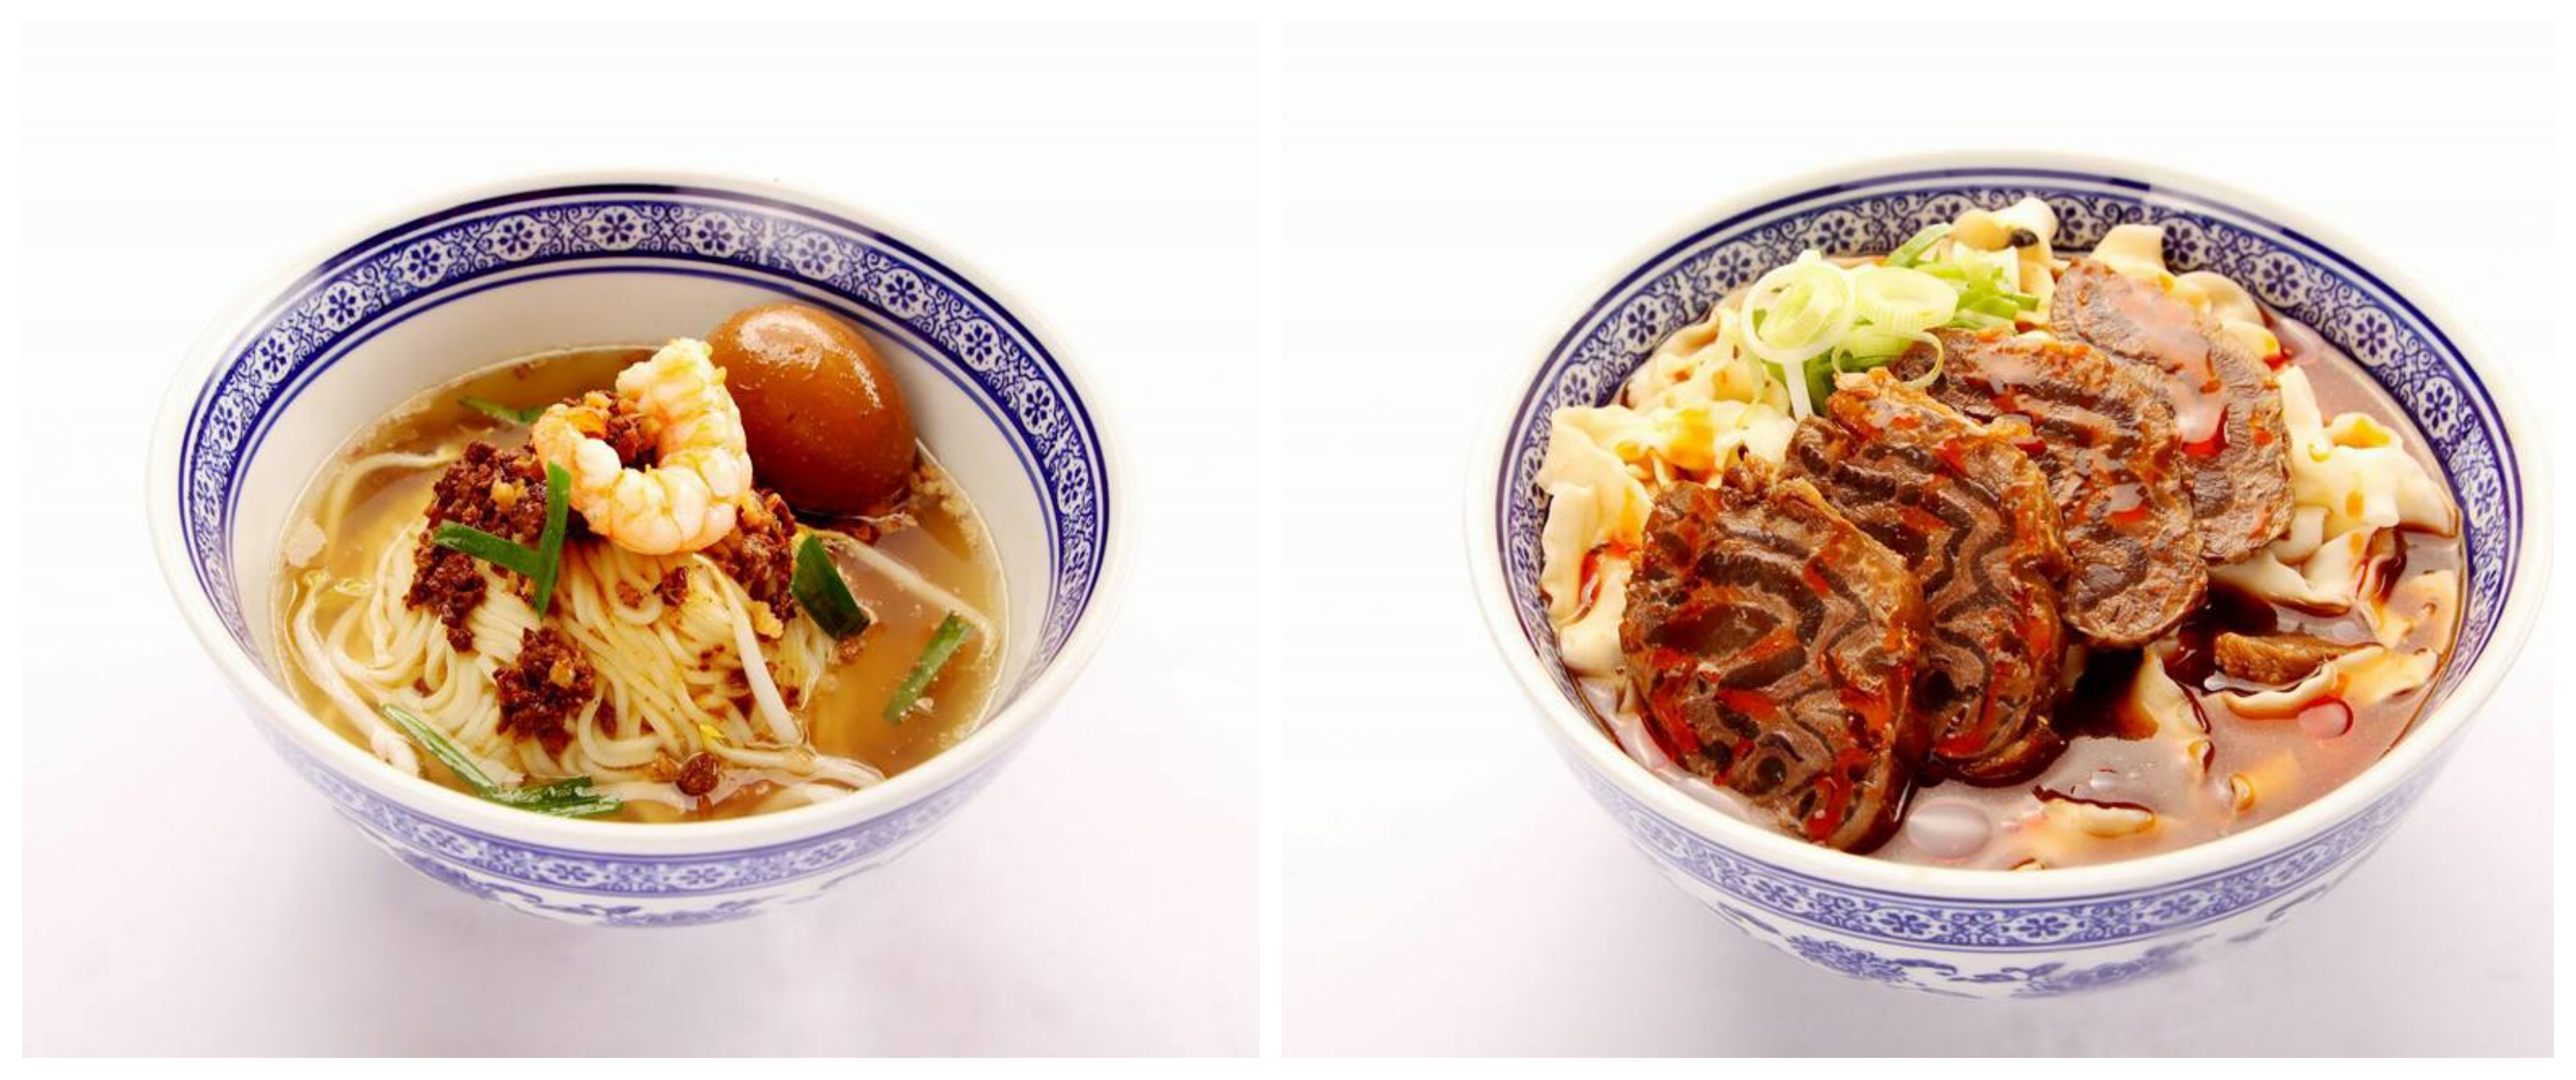 Feng food collage shopee blog shopee singapore hot deals best price feng food collage forumfinder Gallery